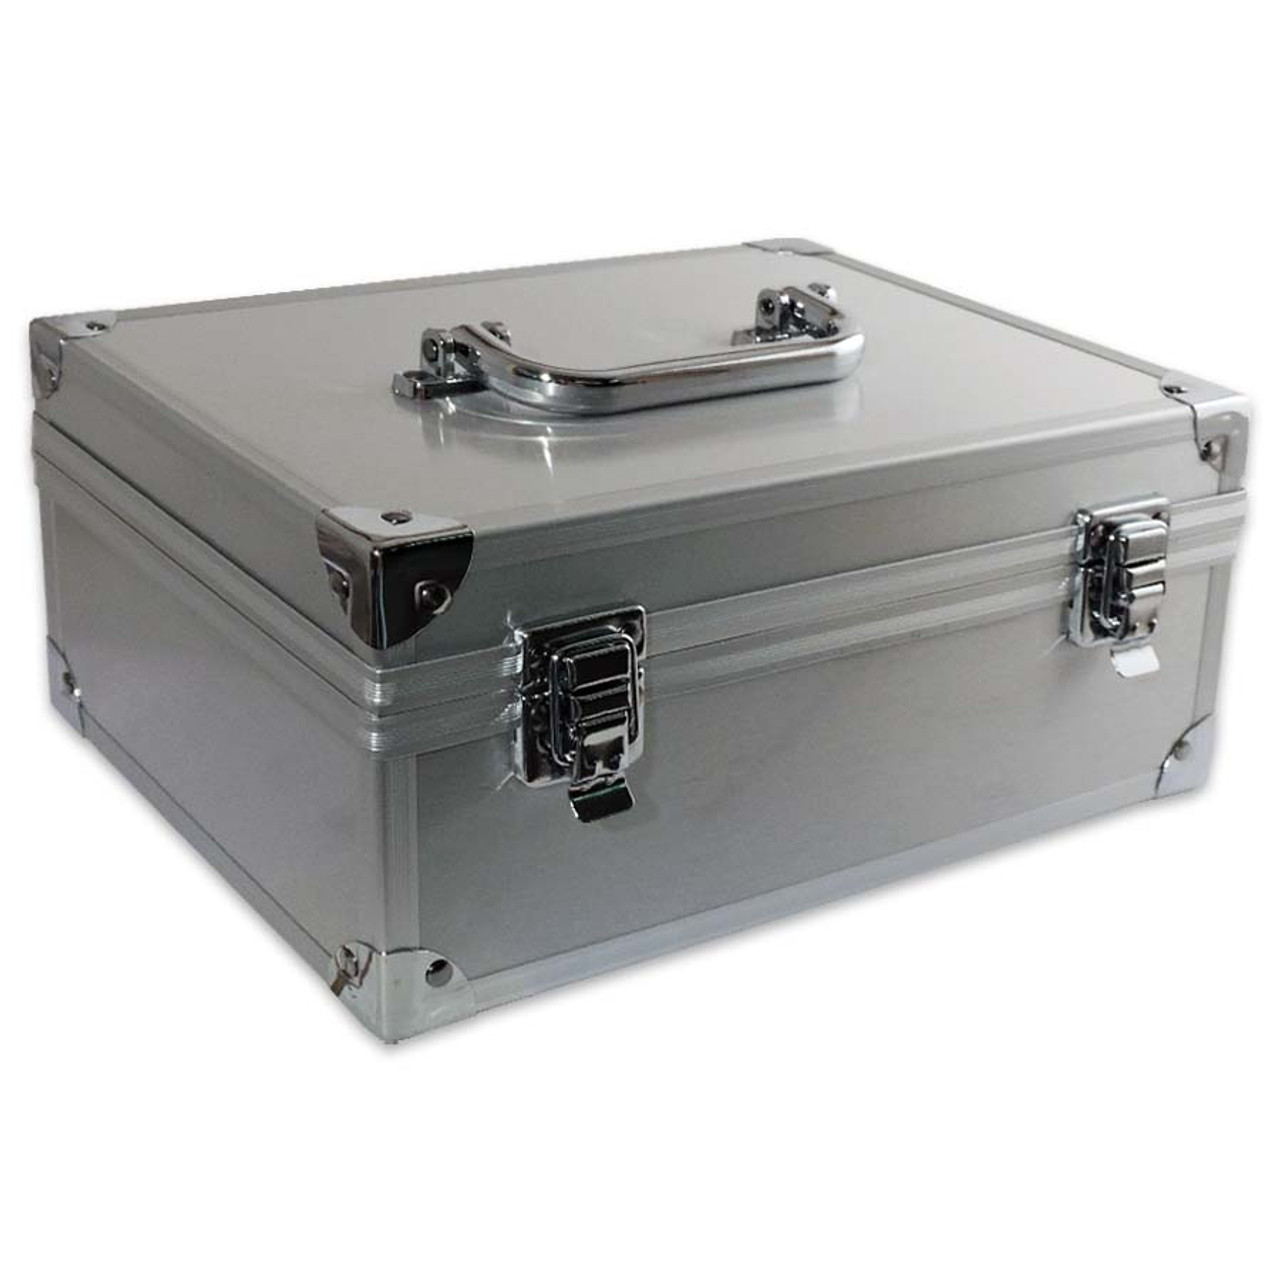 Aluminum Case for Certified Coins, 30 Slot